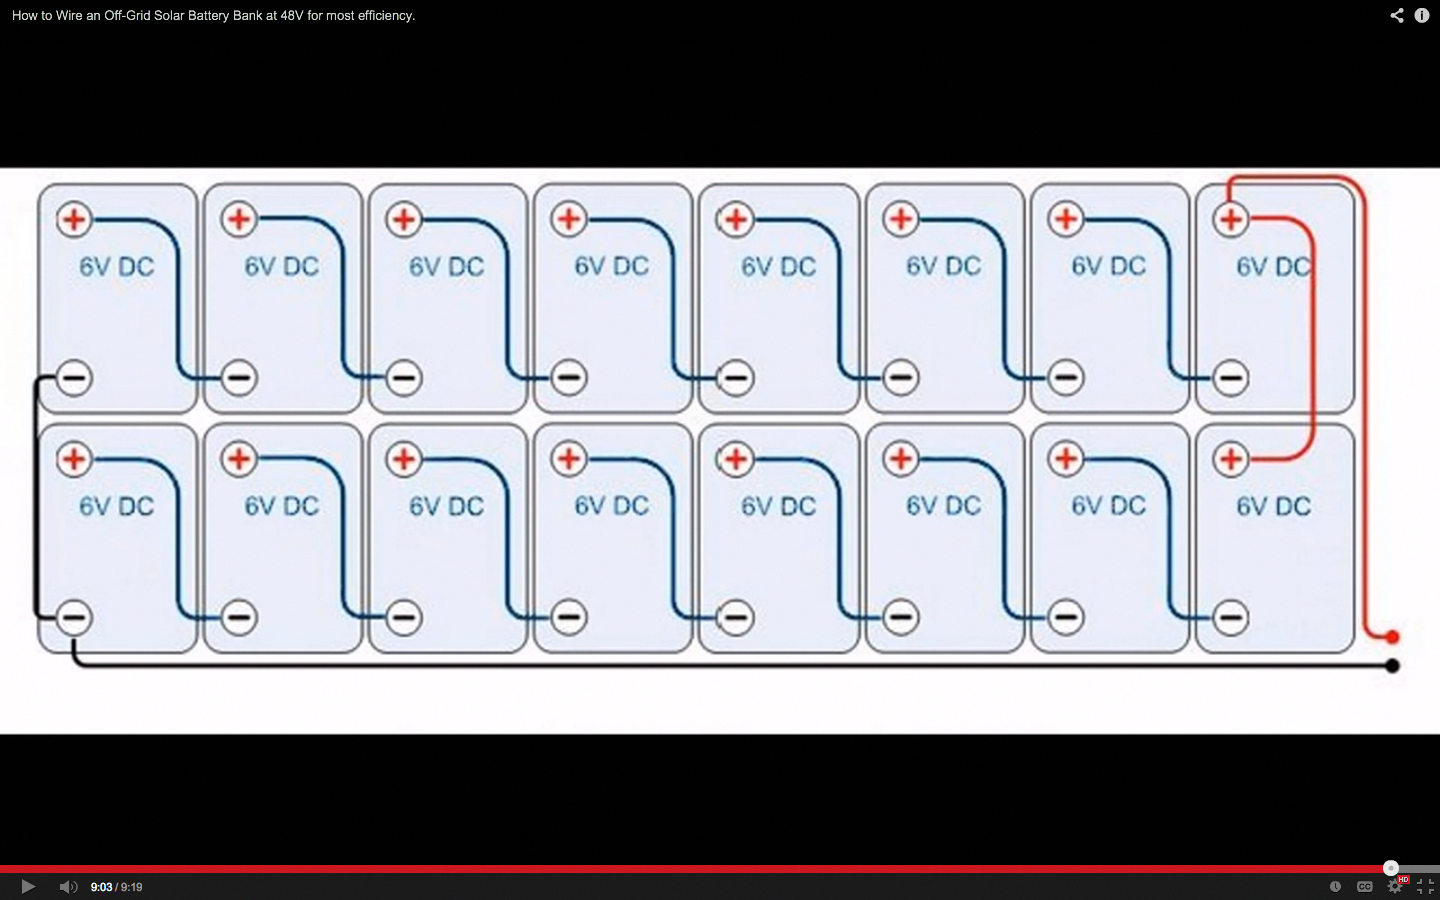 small resolution of simple battery bank wiring diagram for 48volts dc based on 6v batteries